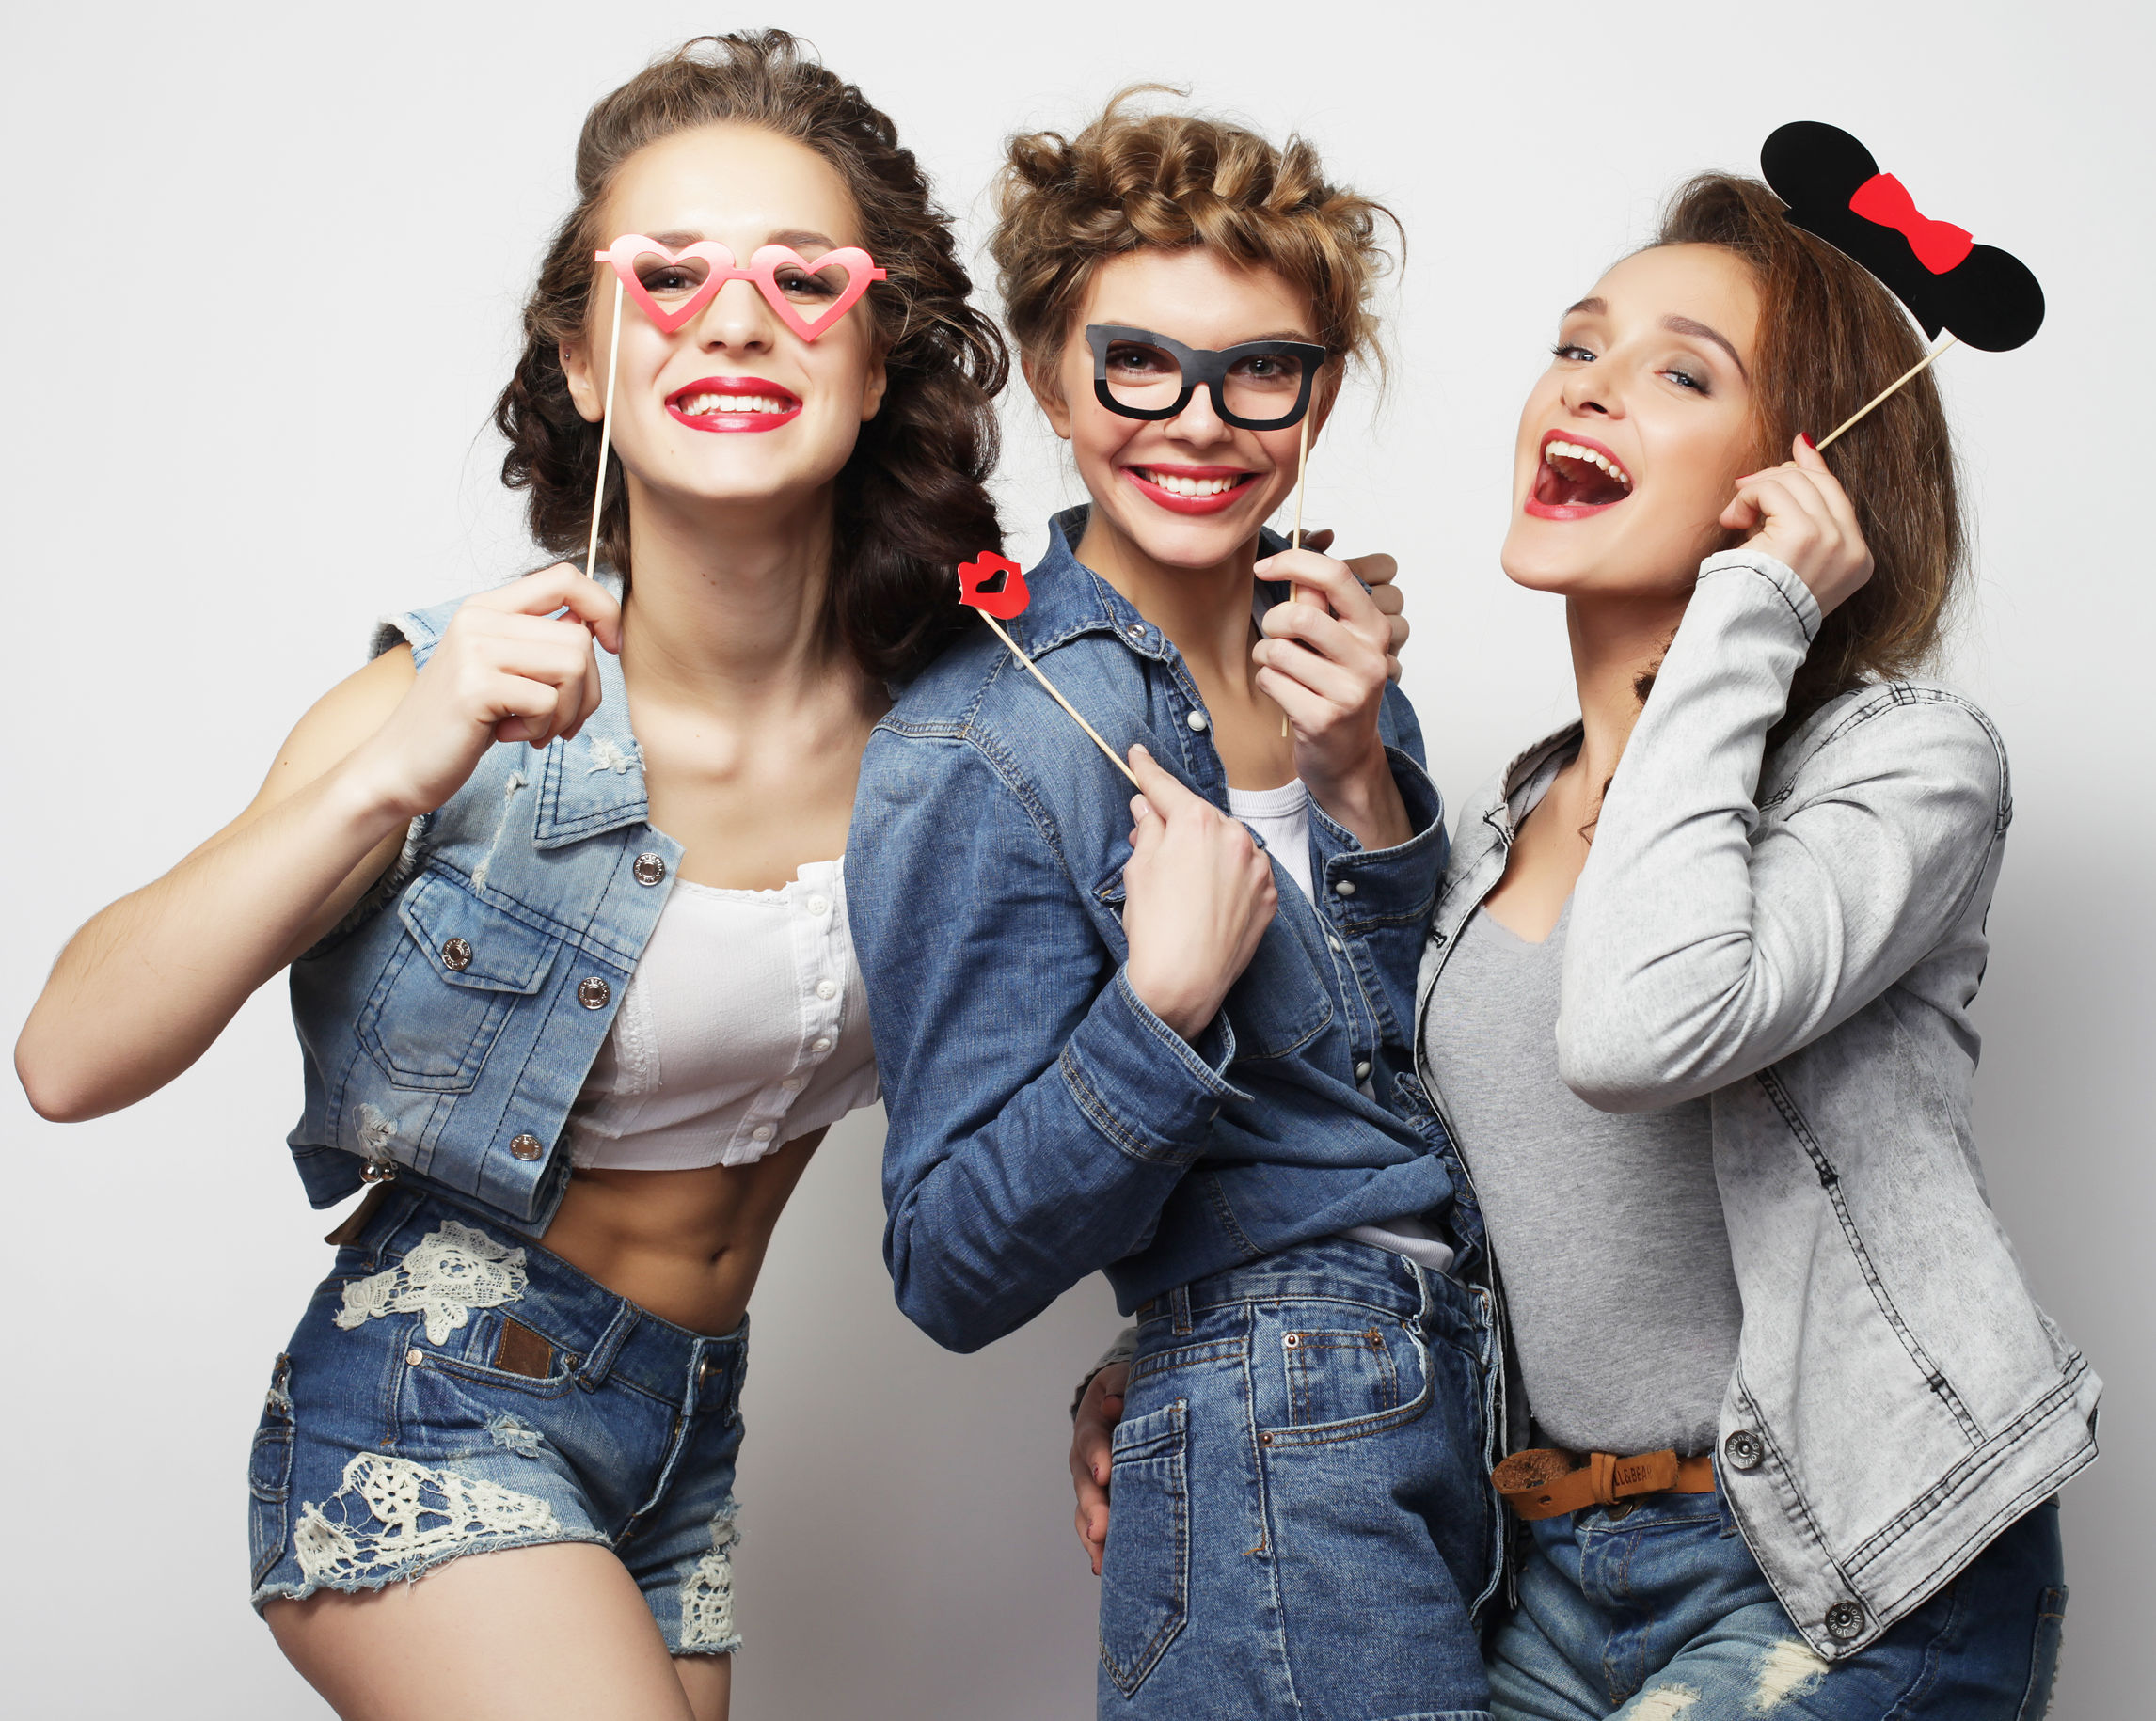 60208197 - stylish sexy hipster girls best friends ready for party